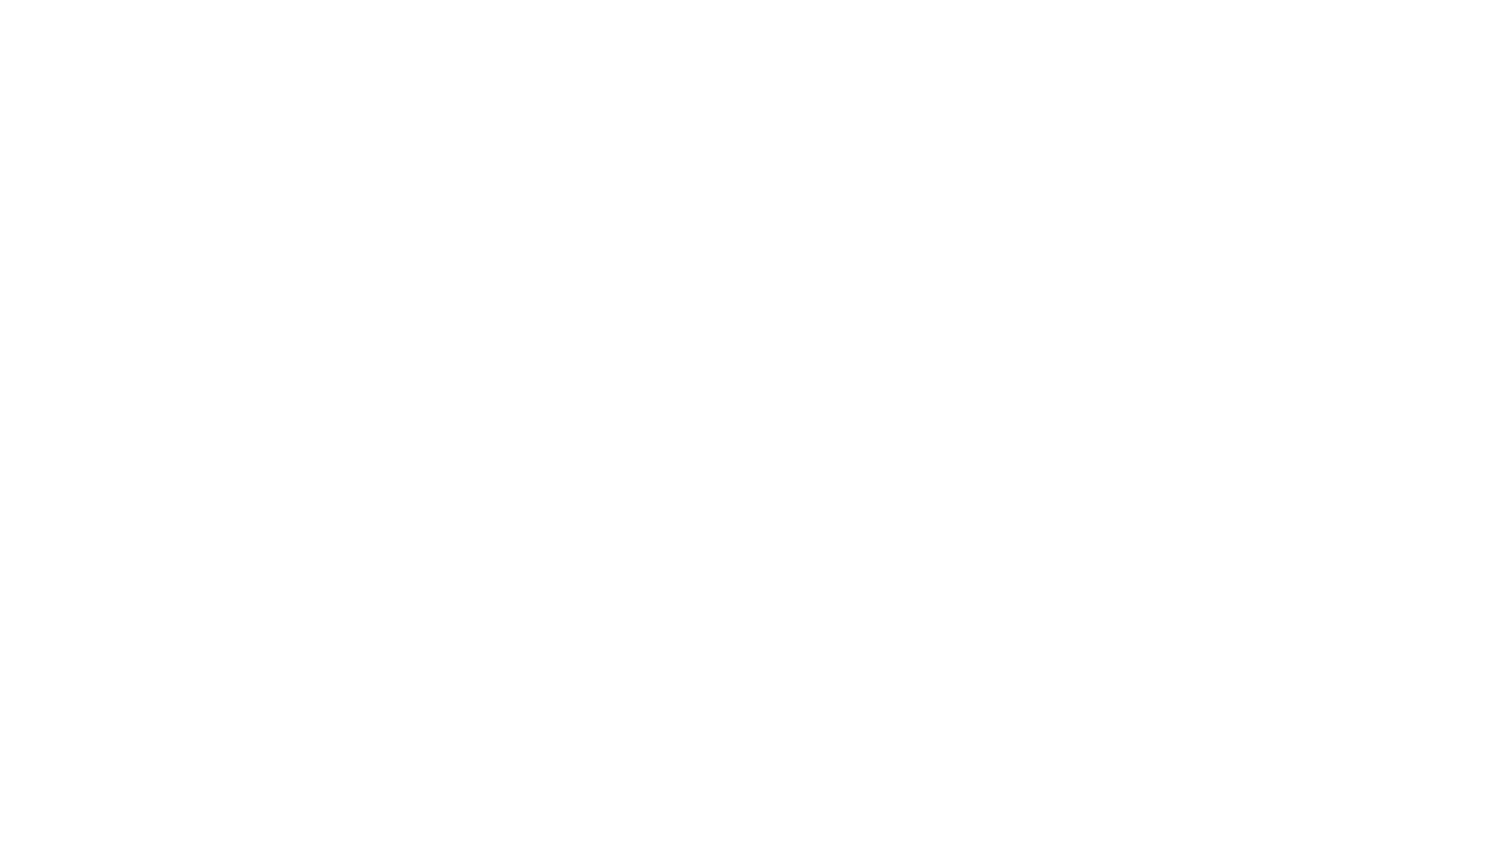 Weekend Projects Studios